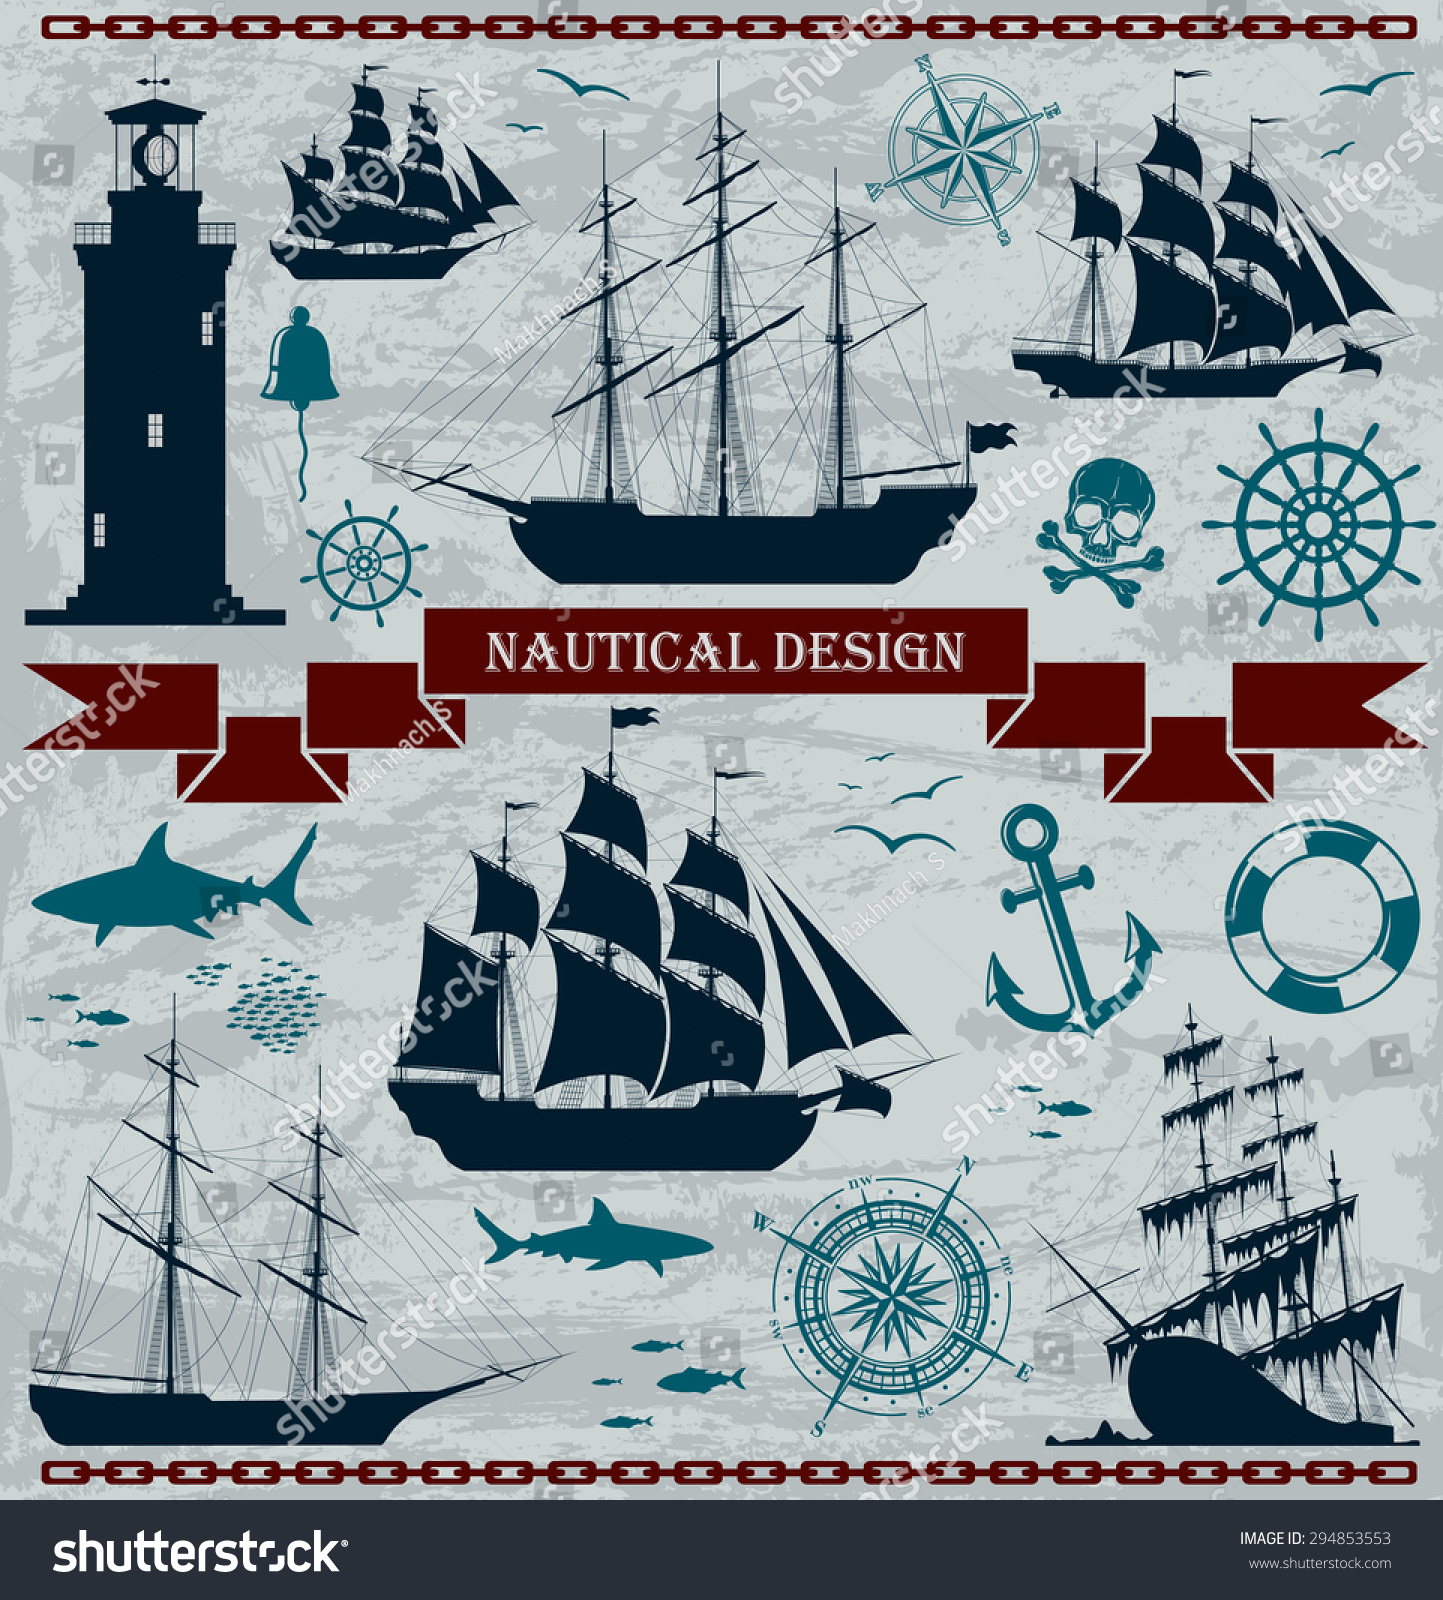 Key Elements Of Nautical Style: Set Of Sailing Ships With Nautical Design Elements. Vector